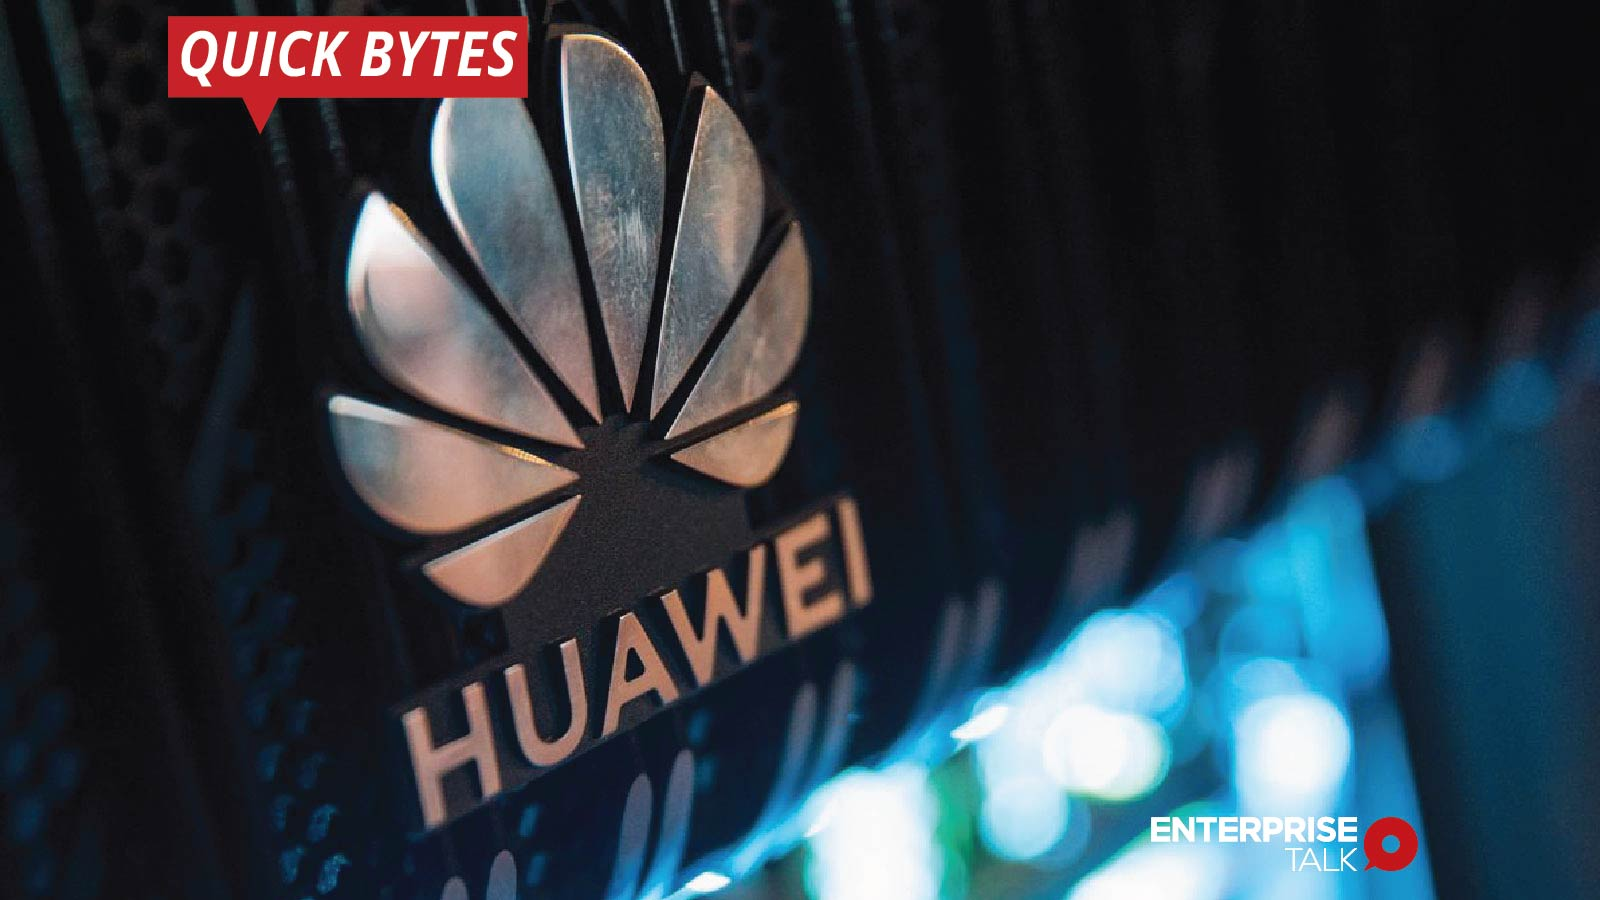 The US Offers Transparency about New Huawei Curb